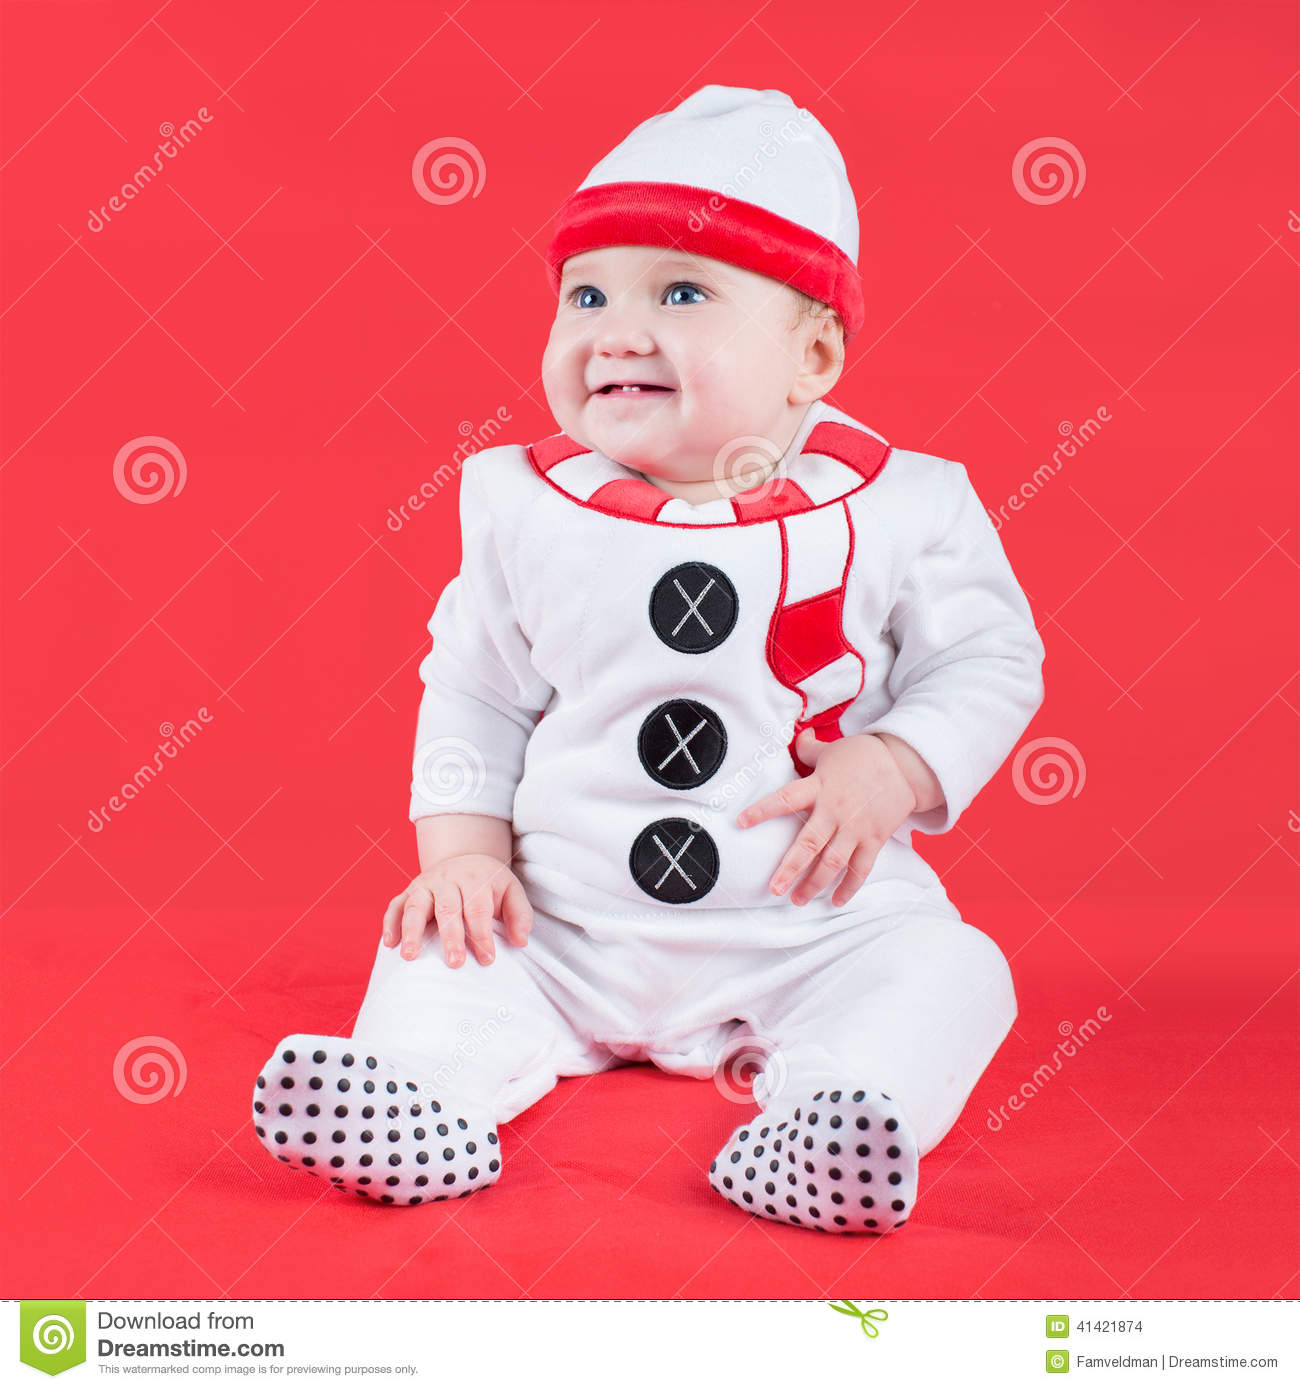 f48358105 Cute Baby Wearing Christmas Snow Man Costume Stock Photo - Image of ...